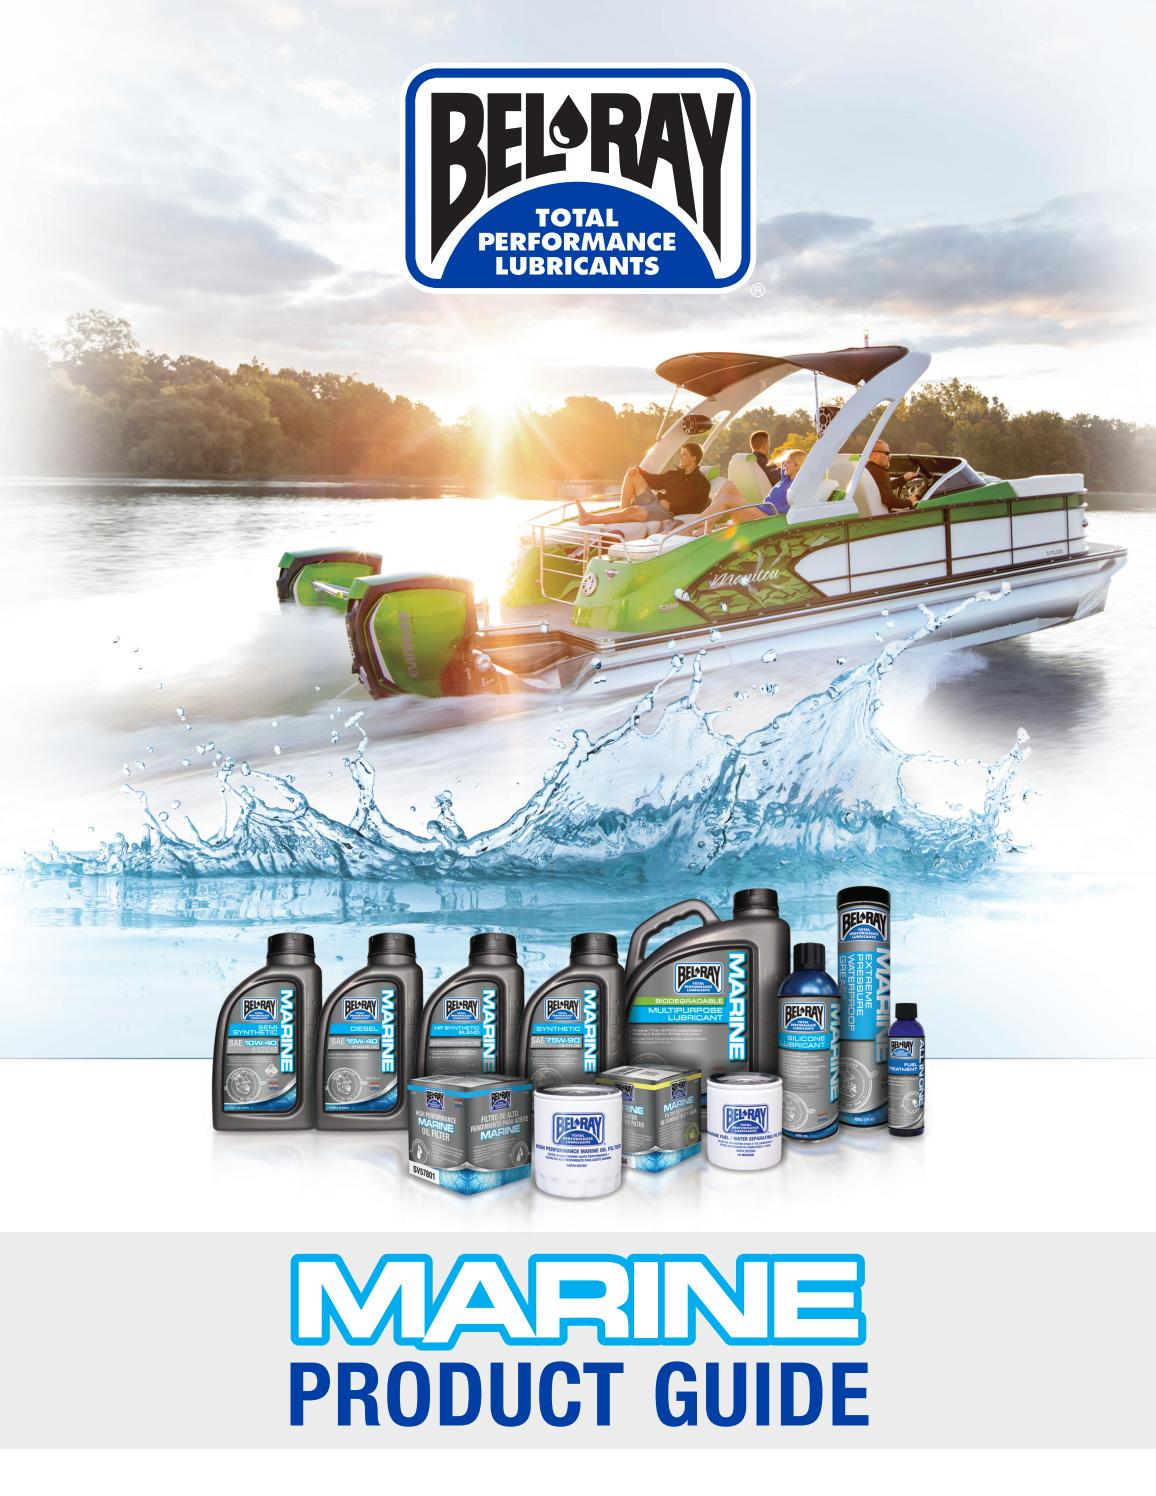 Bel-Ray Marine Product Guide 2017 by Bel-Ray Company LLC - issuu